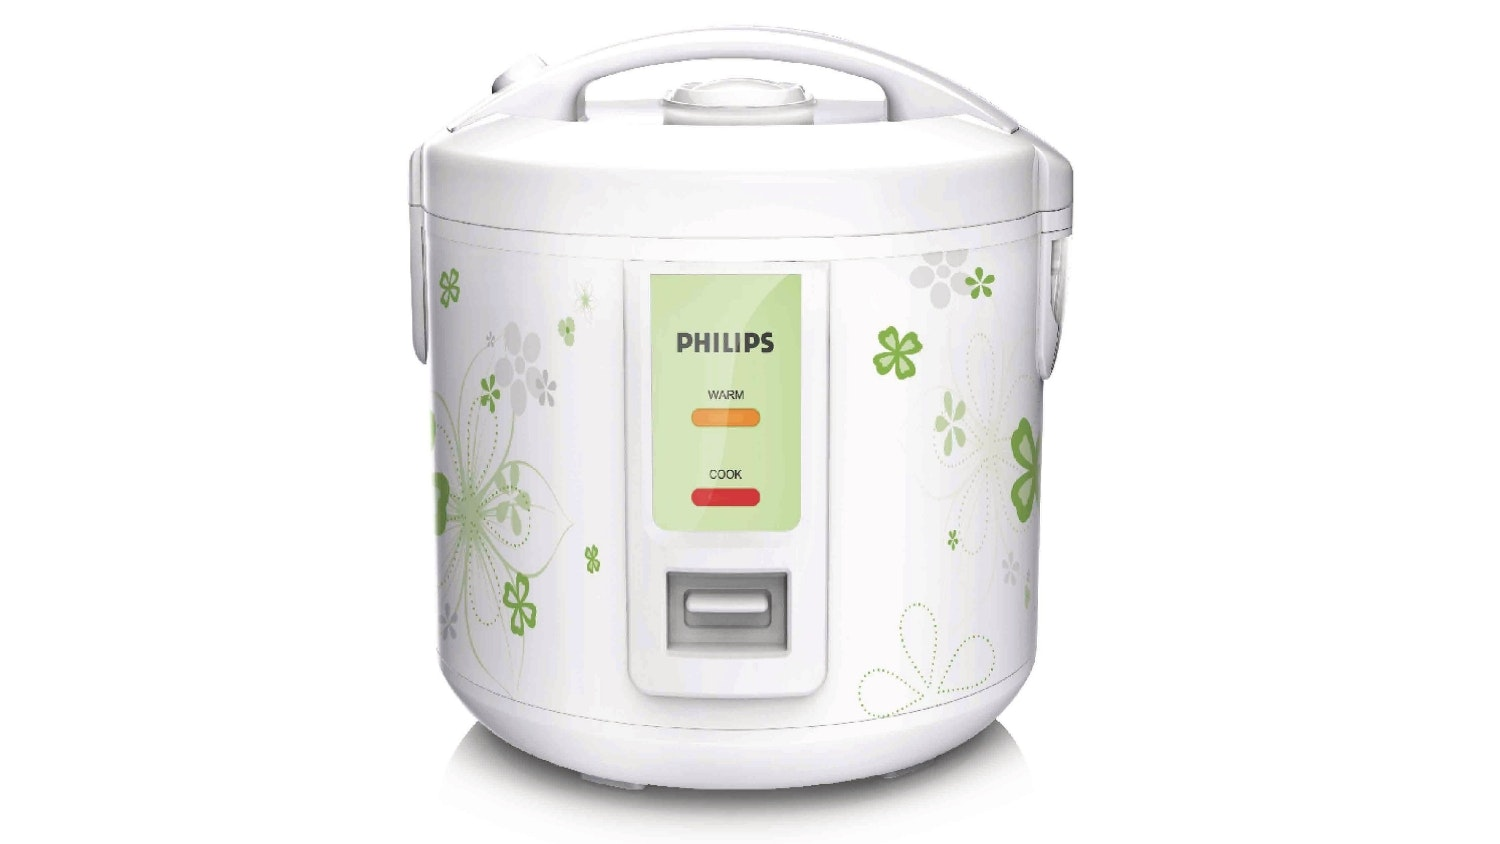 Philips Daily Collection Rice Cooker Harvey Norman Singapore